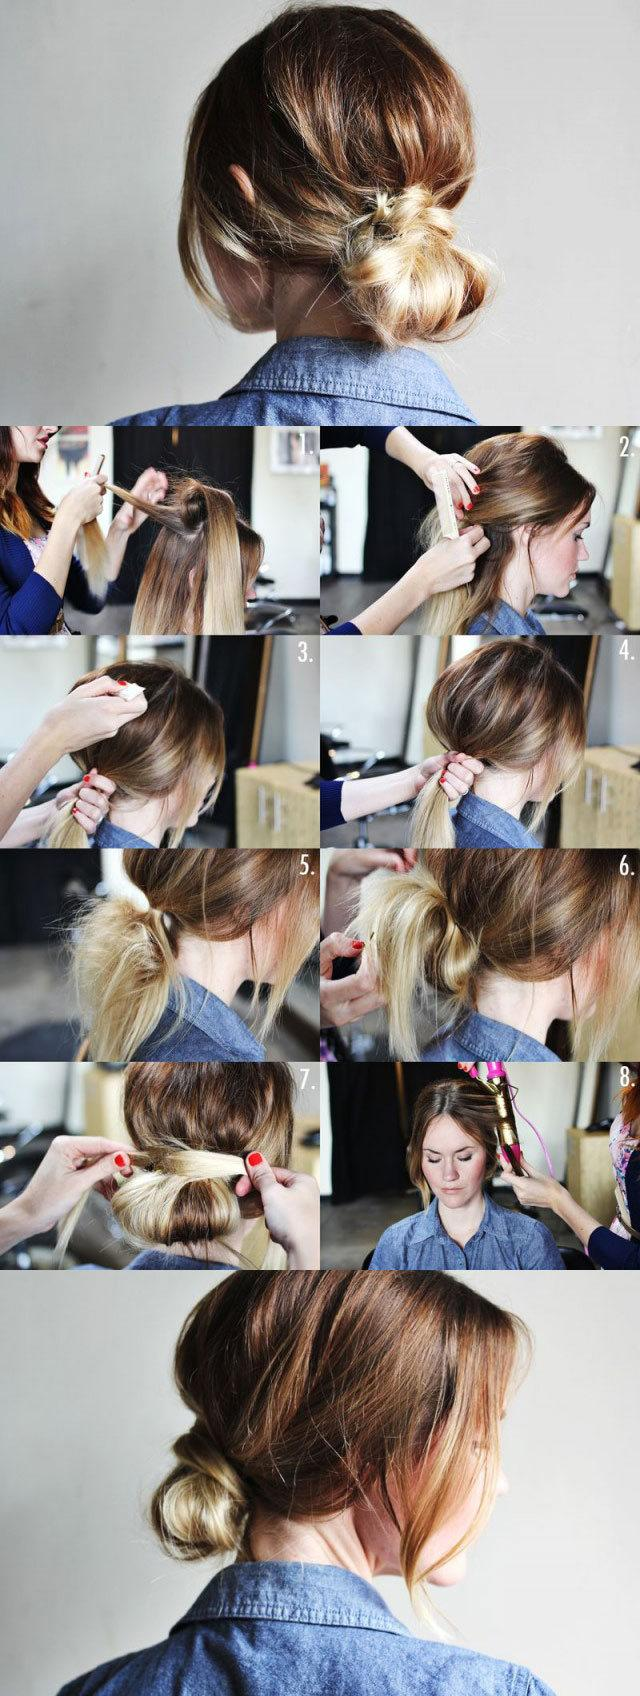 Hairstyles-for-Long-Hair-Step-by-Step-13